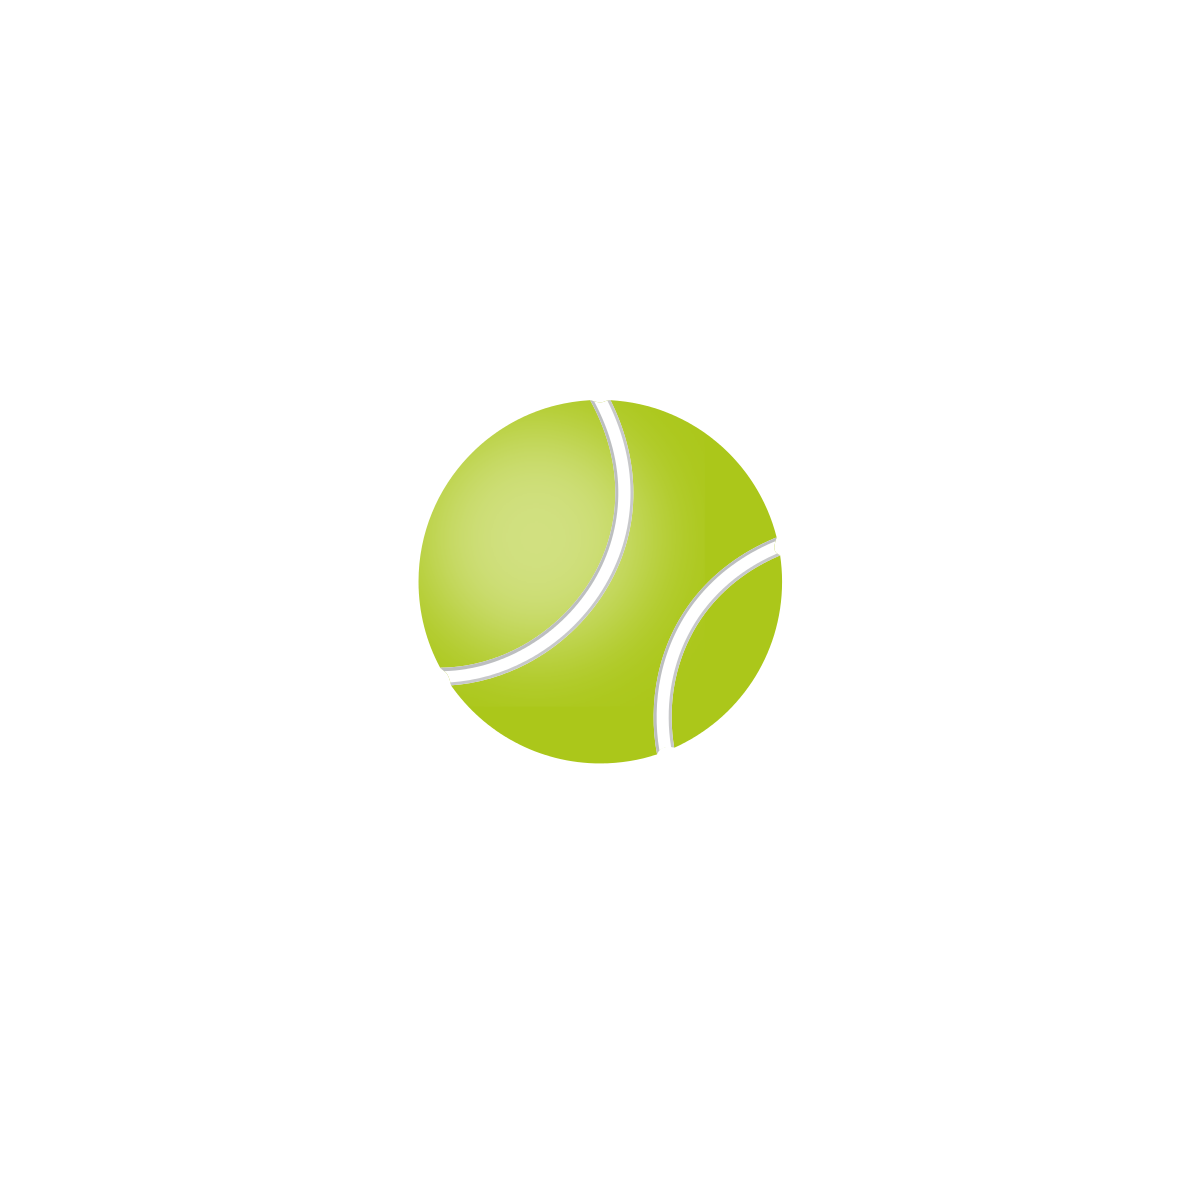 Free basketball and tennis ball clipart jpg library download Tennis PNG images free download, tennis ball racket PNG jpg library download